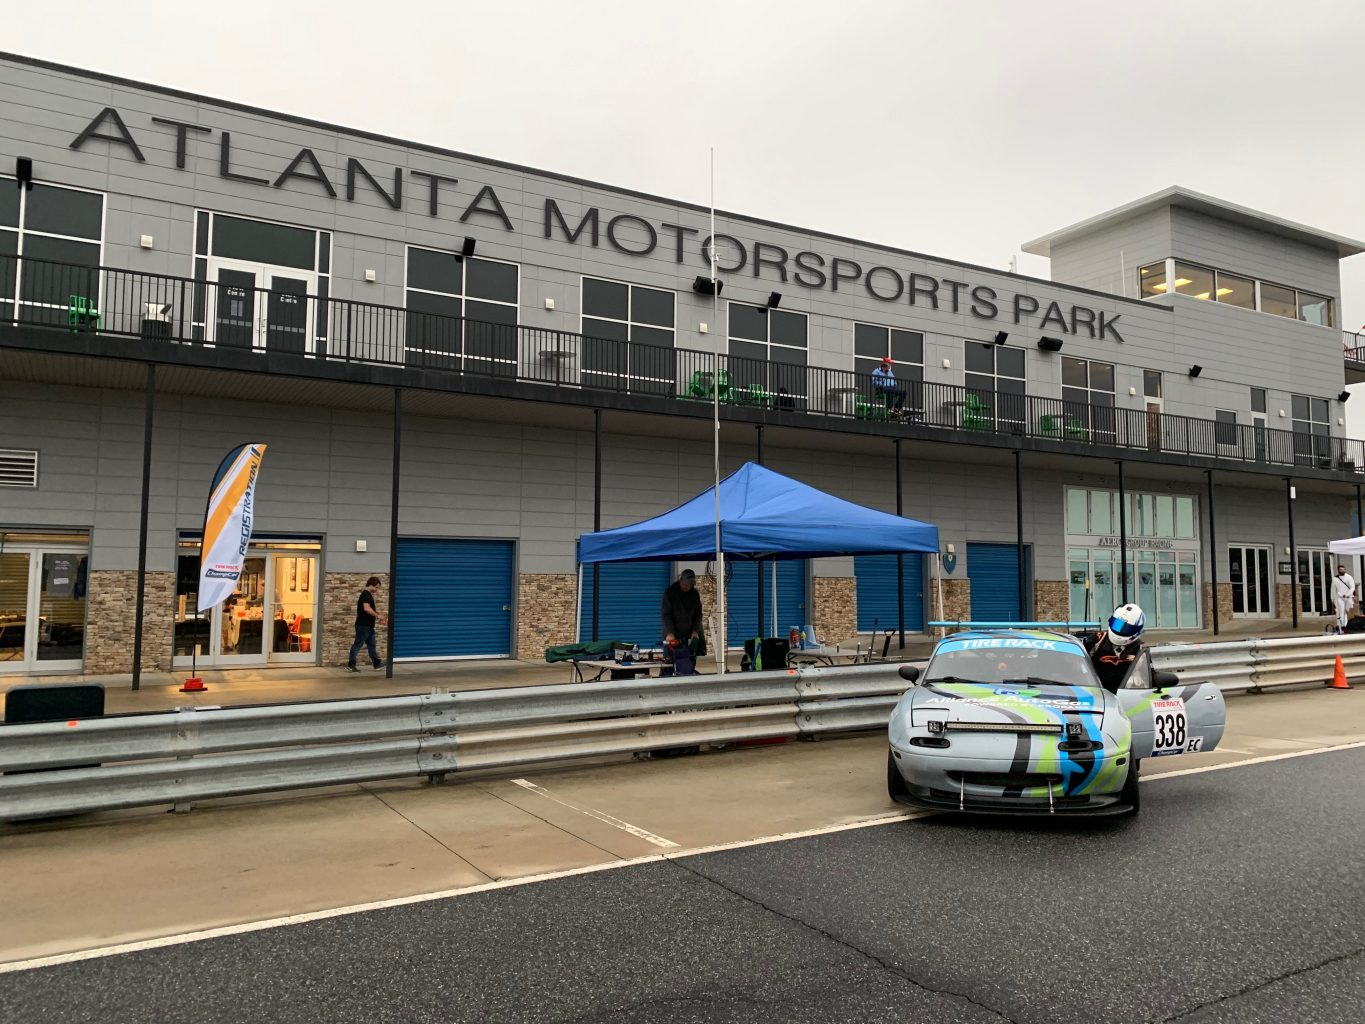 Alliance AutoGas Race Car at the Atlanta MotorSports Park with Race Car Driver entering vehicle